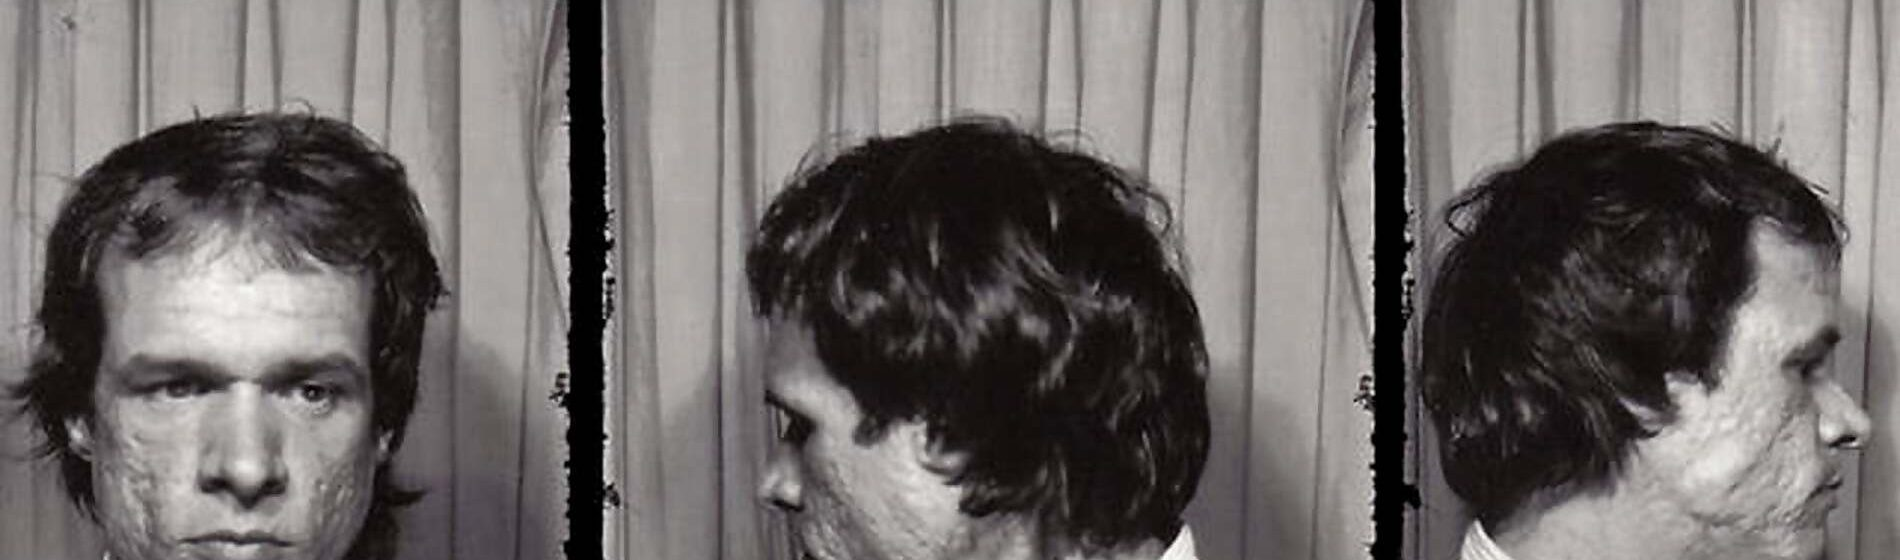 Arthur Russell from Wild Combination